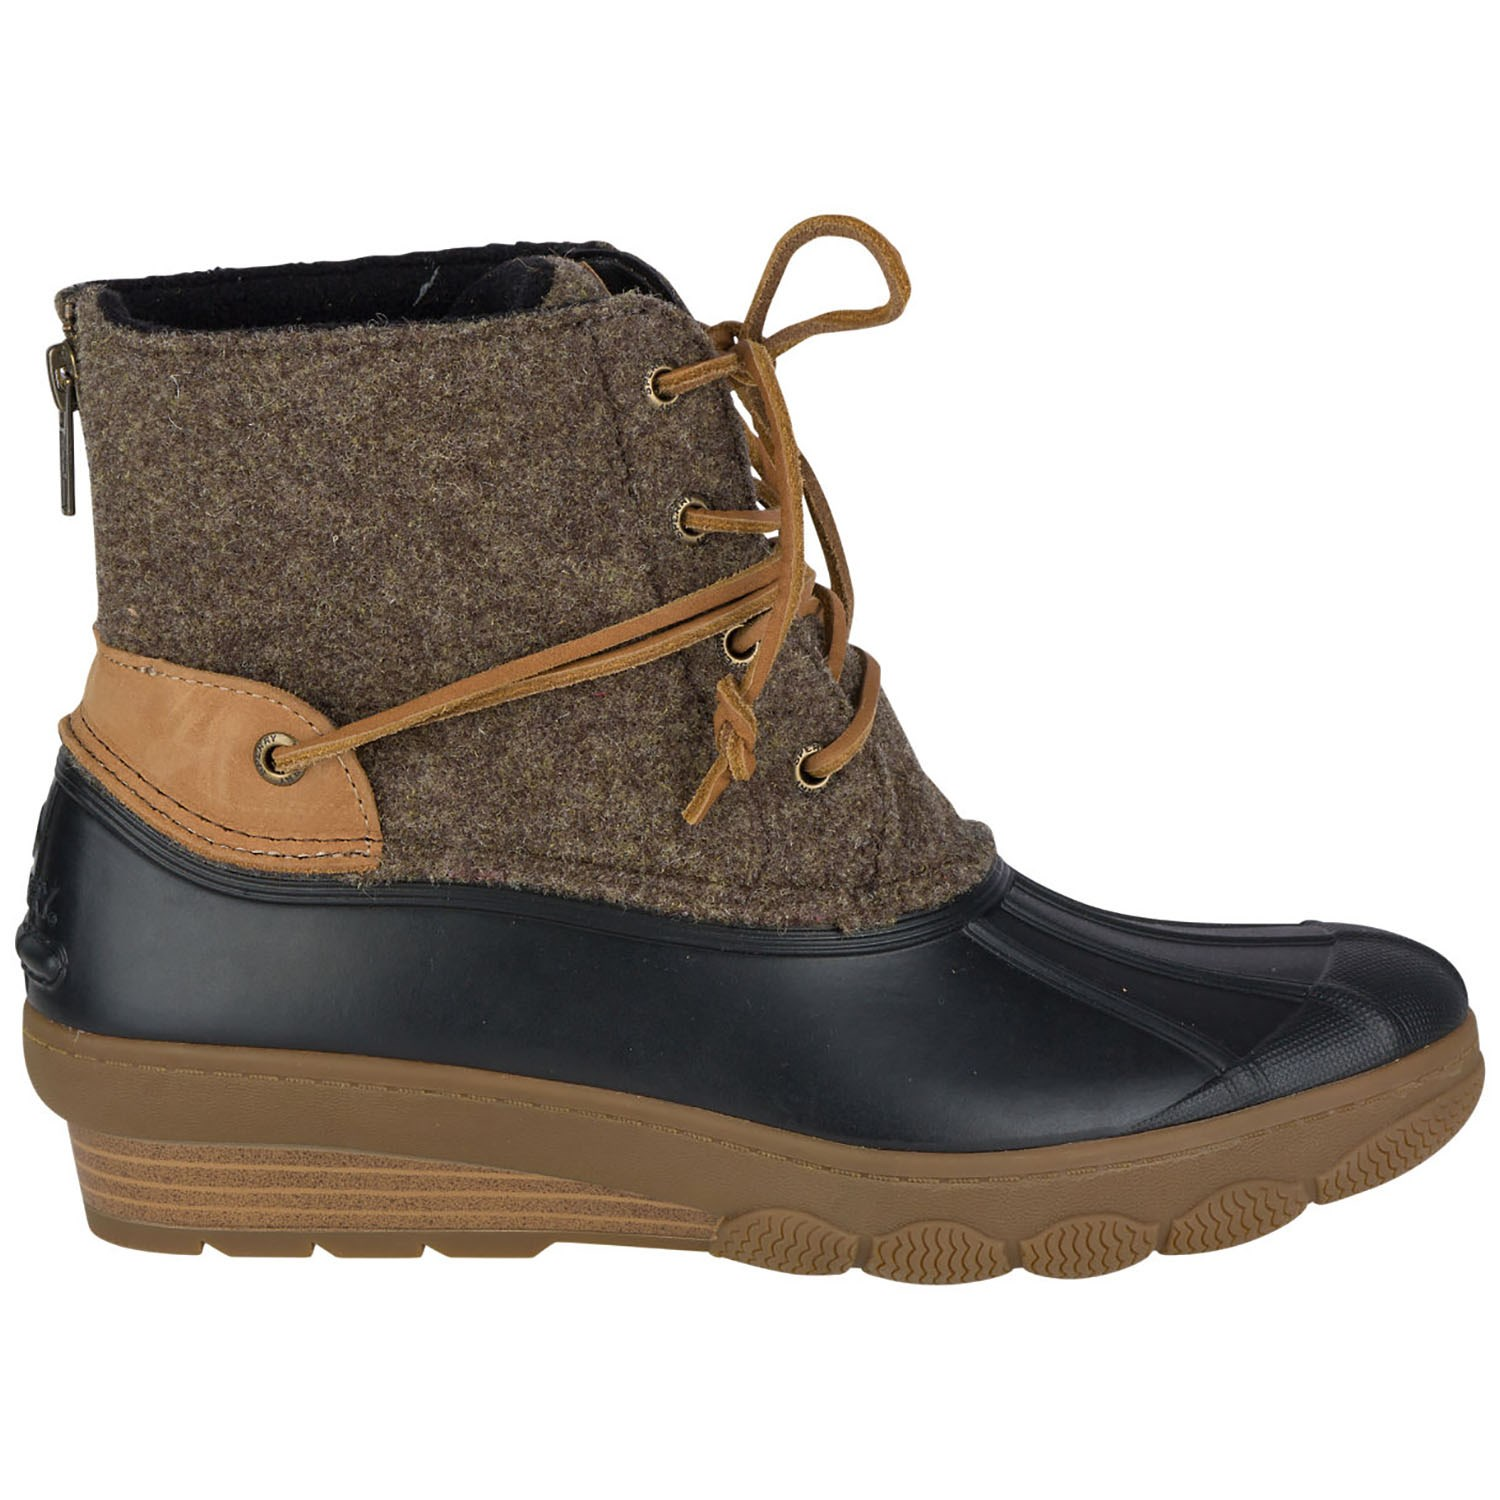 648bbd6c0086 Sperry Top-Sider Saltwater Wedge Tide Wool Boots - Women s